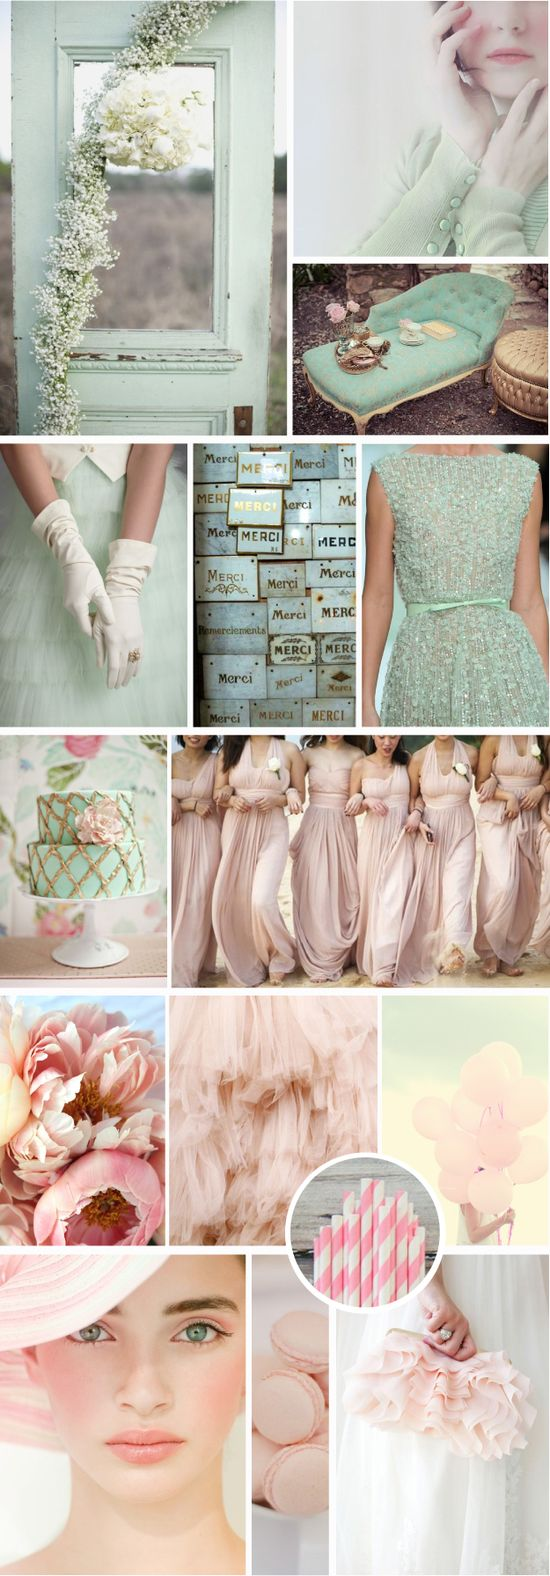 Blush and mint wedding inspiration from @Matt Valk Chuah White Dress by the shore